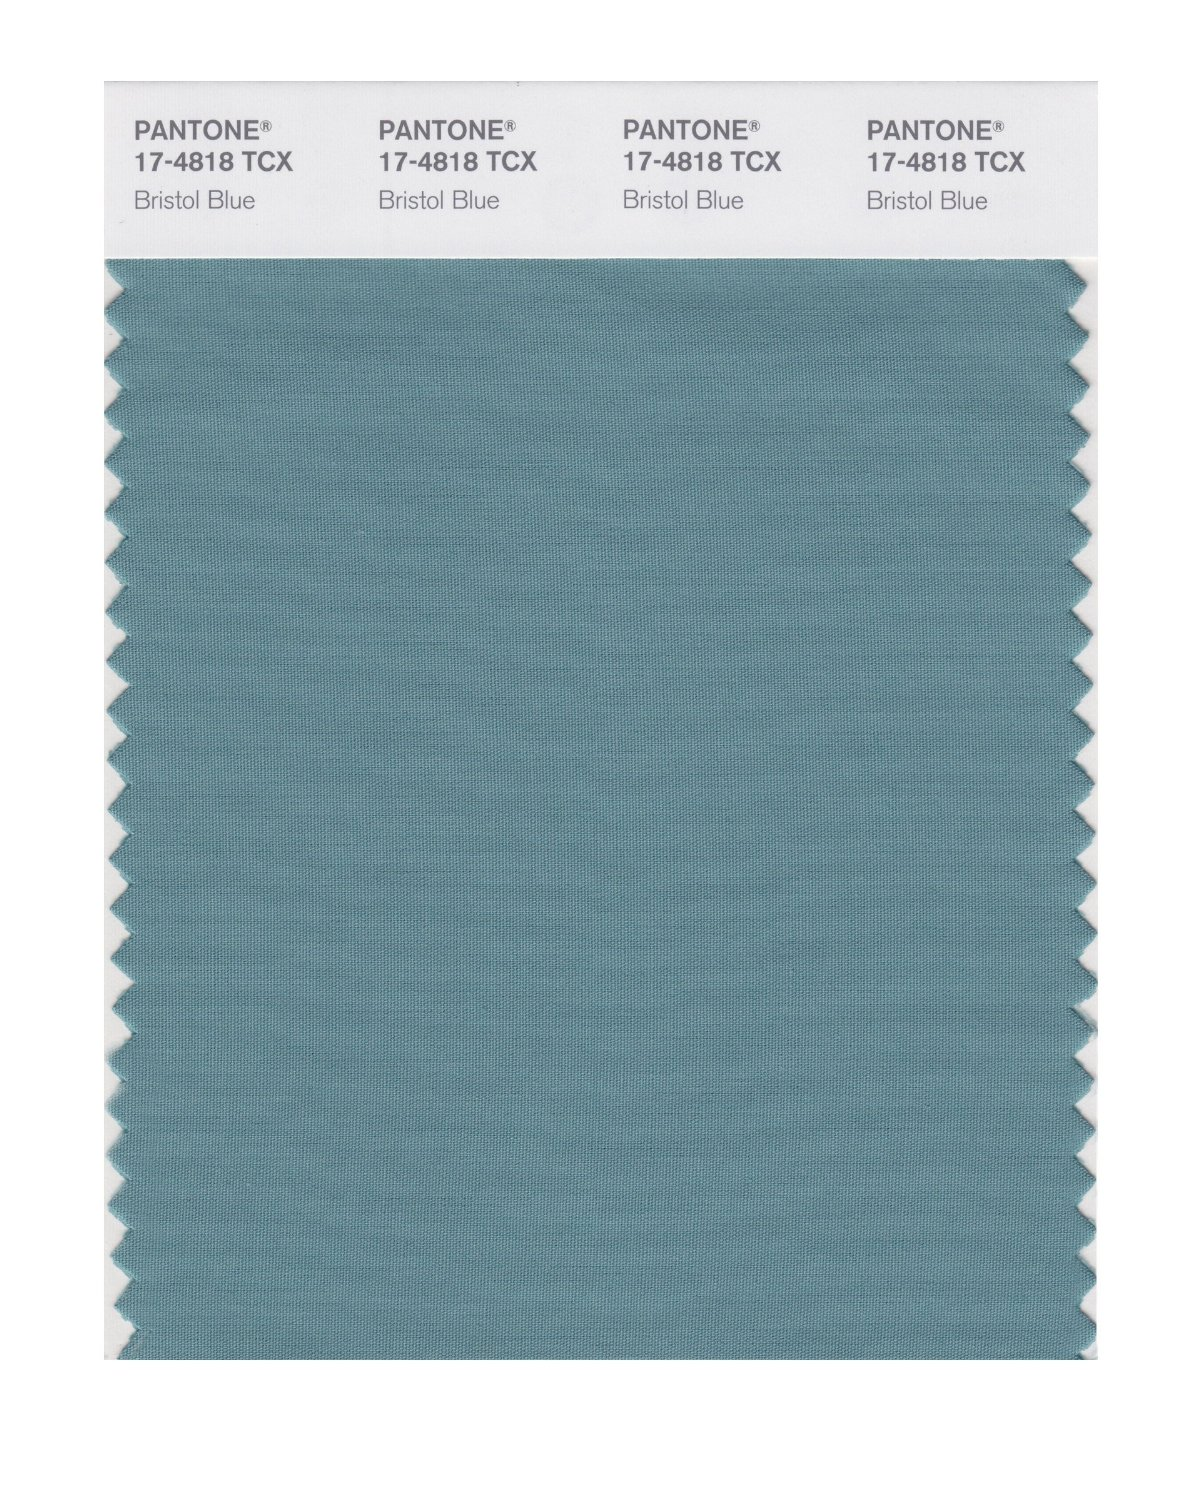 Pantone Smart Swatch 17-4818 Bristol Blue